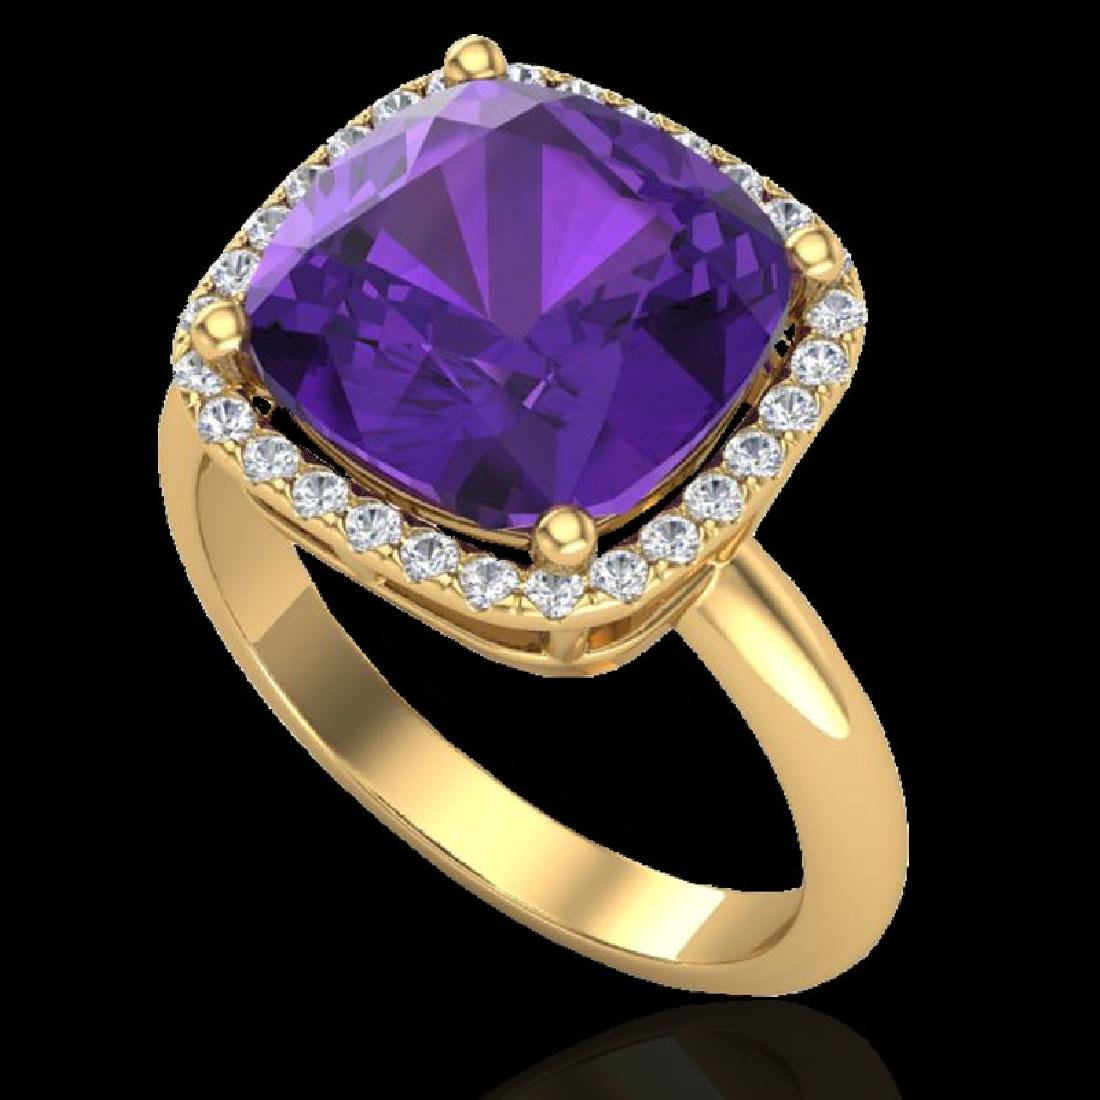 6 CTW Amethyst & Micro Pave Halo VS/SI Diamond Ring - 2